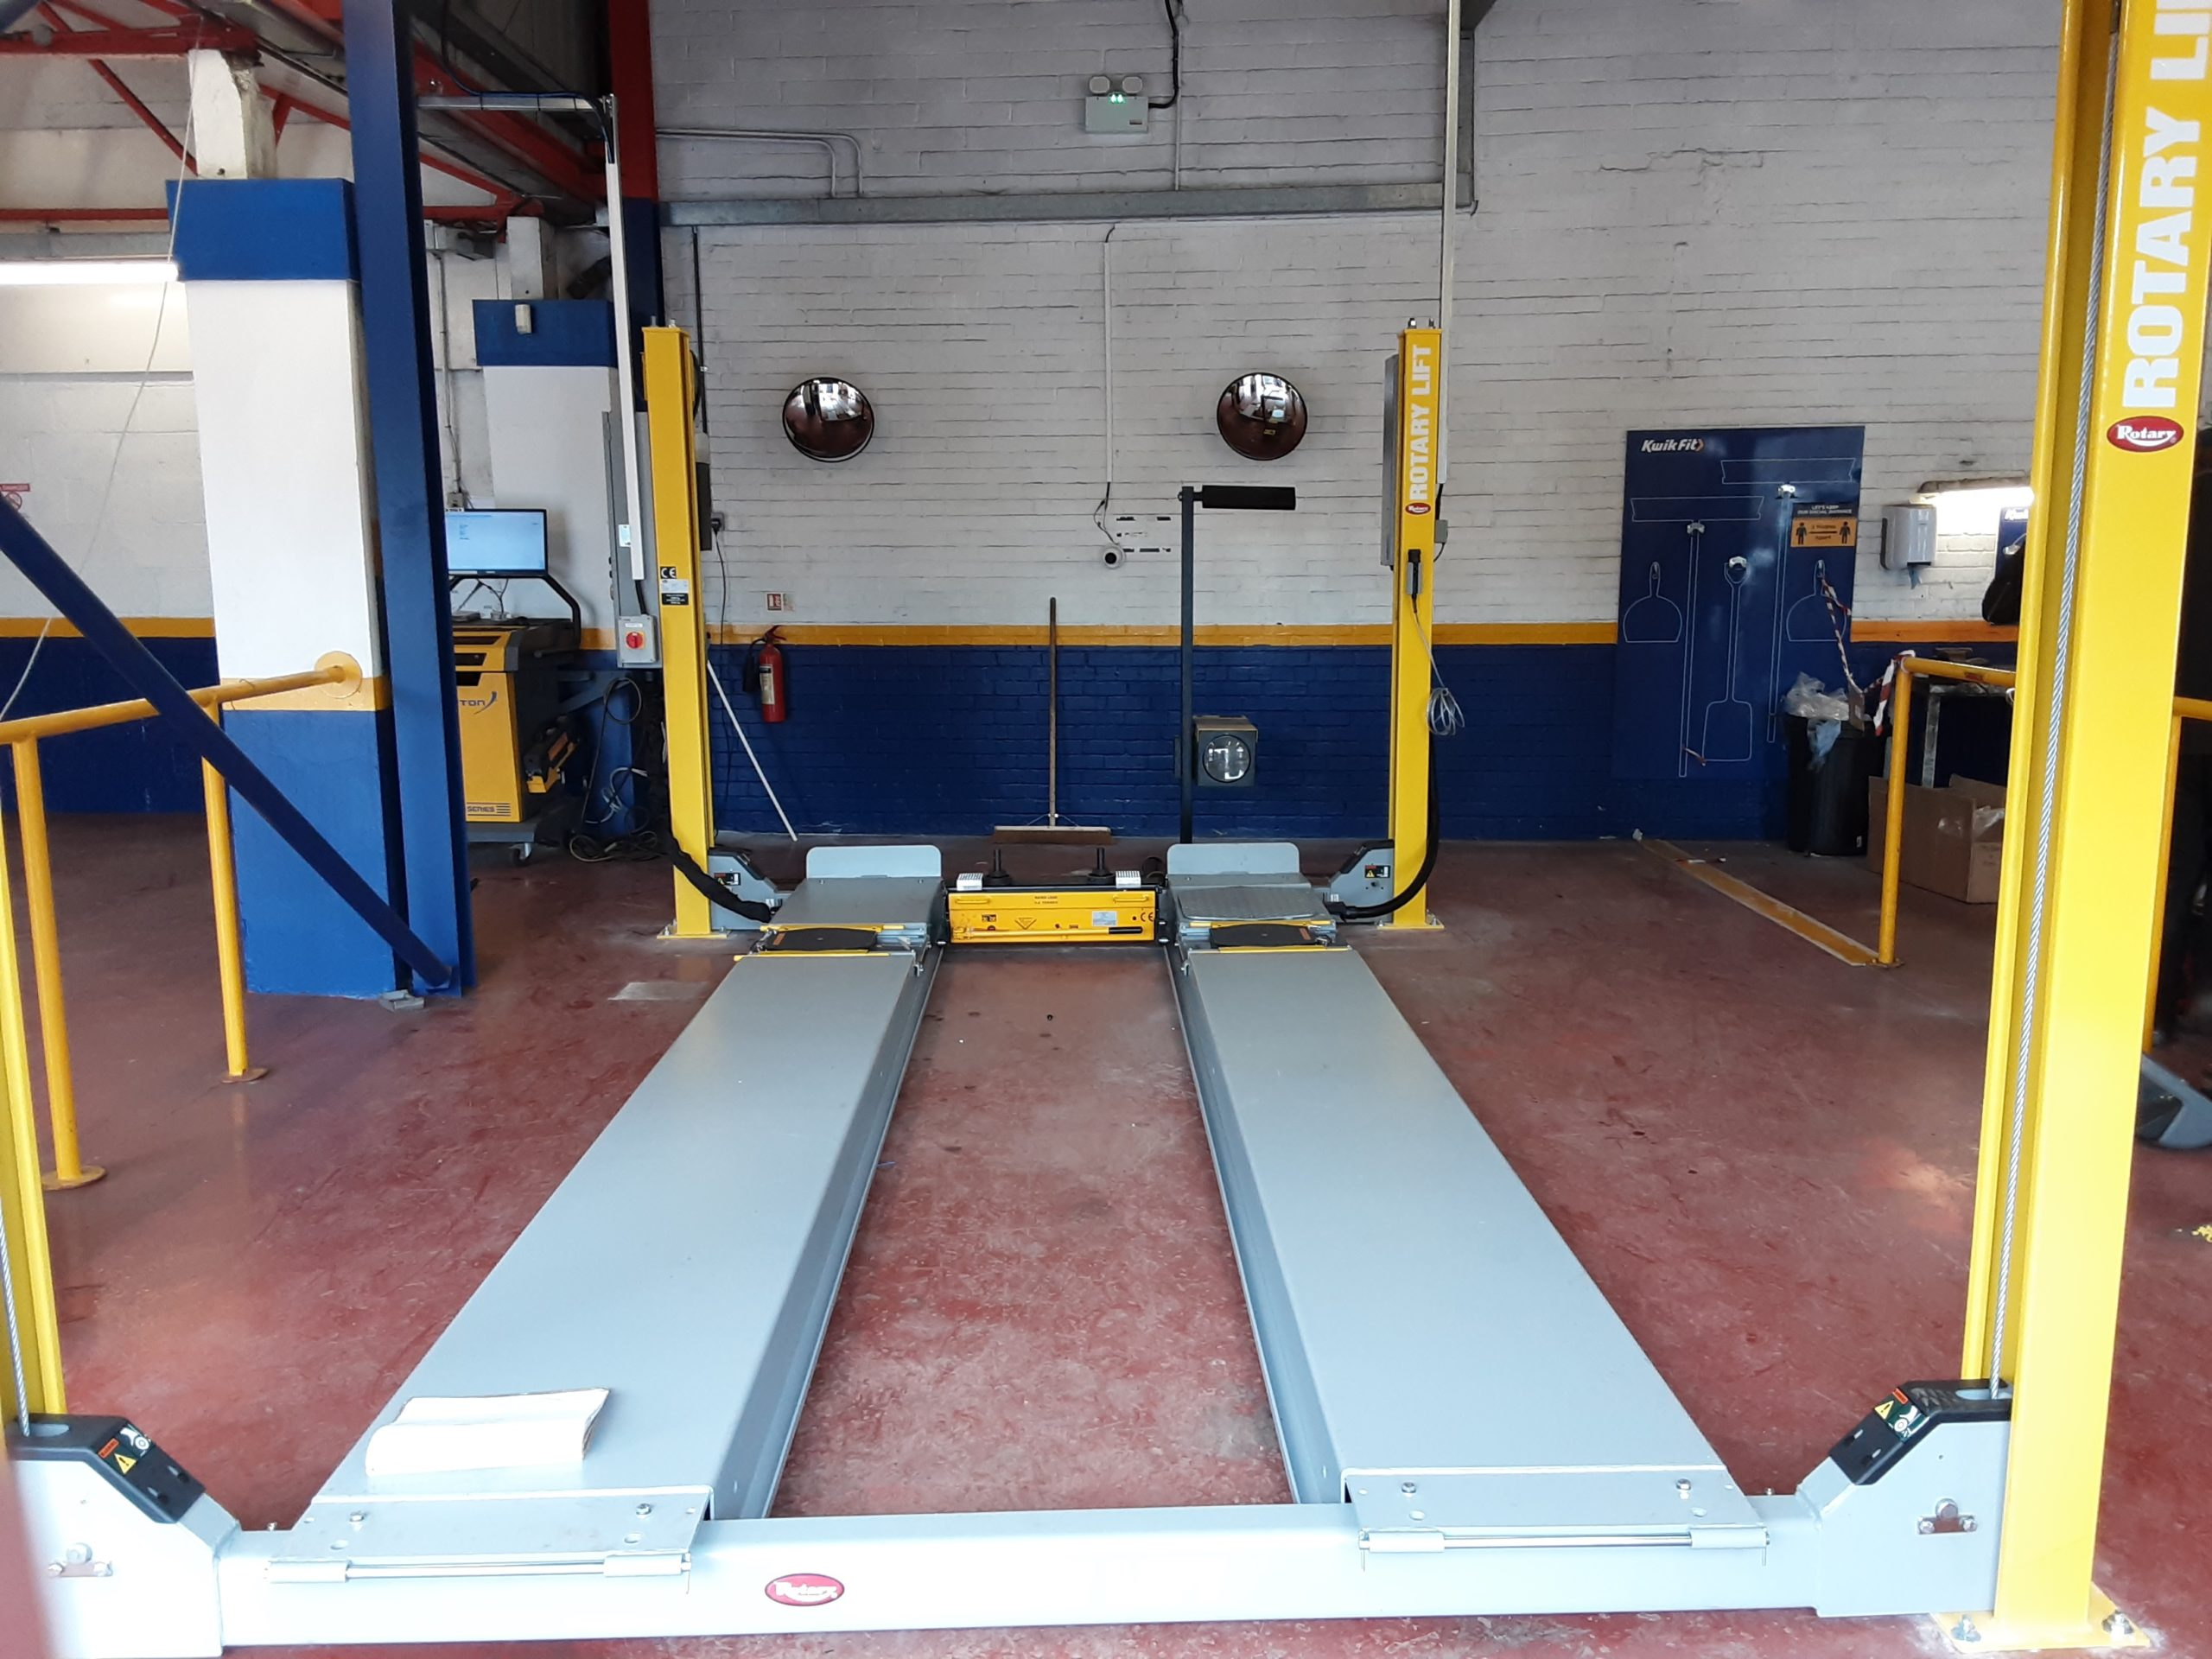 Replacing their old MOT Bay was a doddle - the new rotary MOT lift was easy to install and the team did a great job.